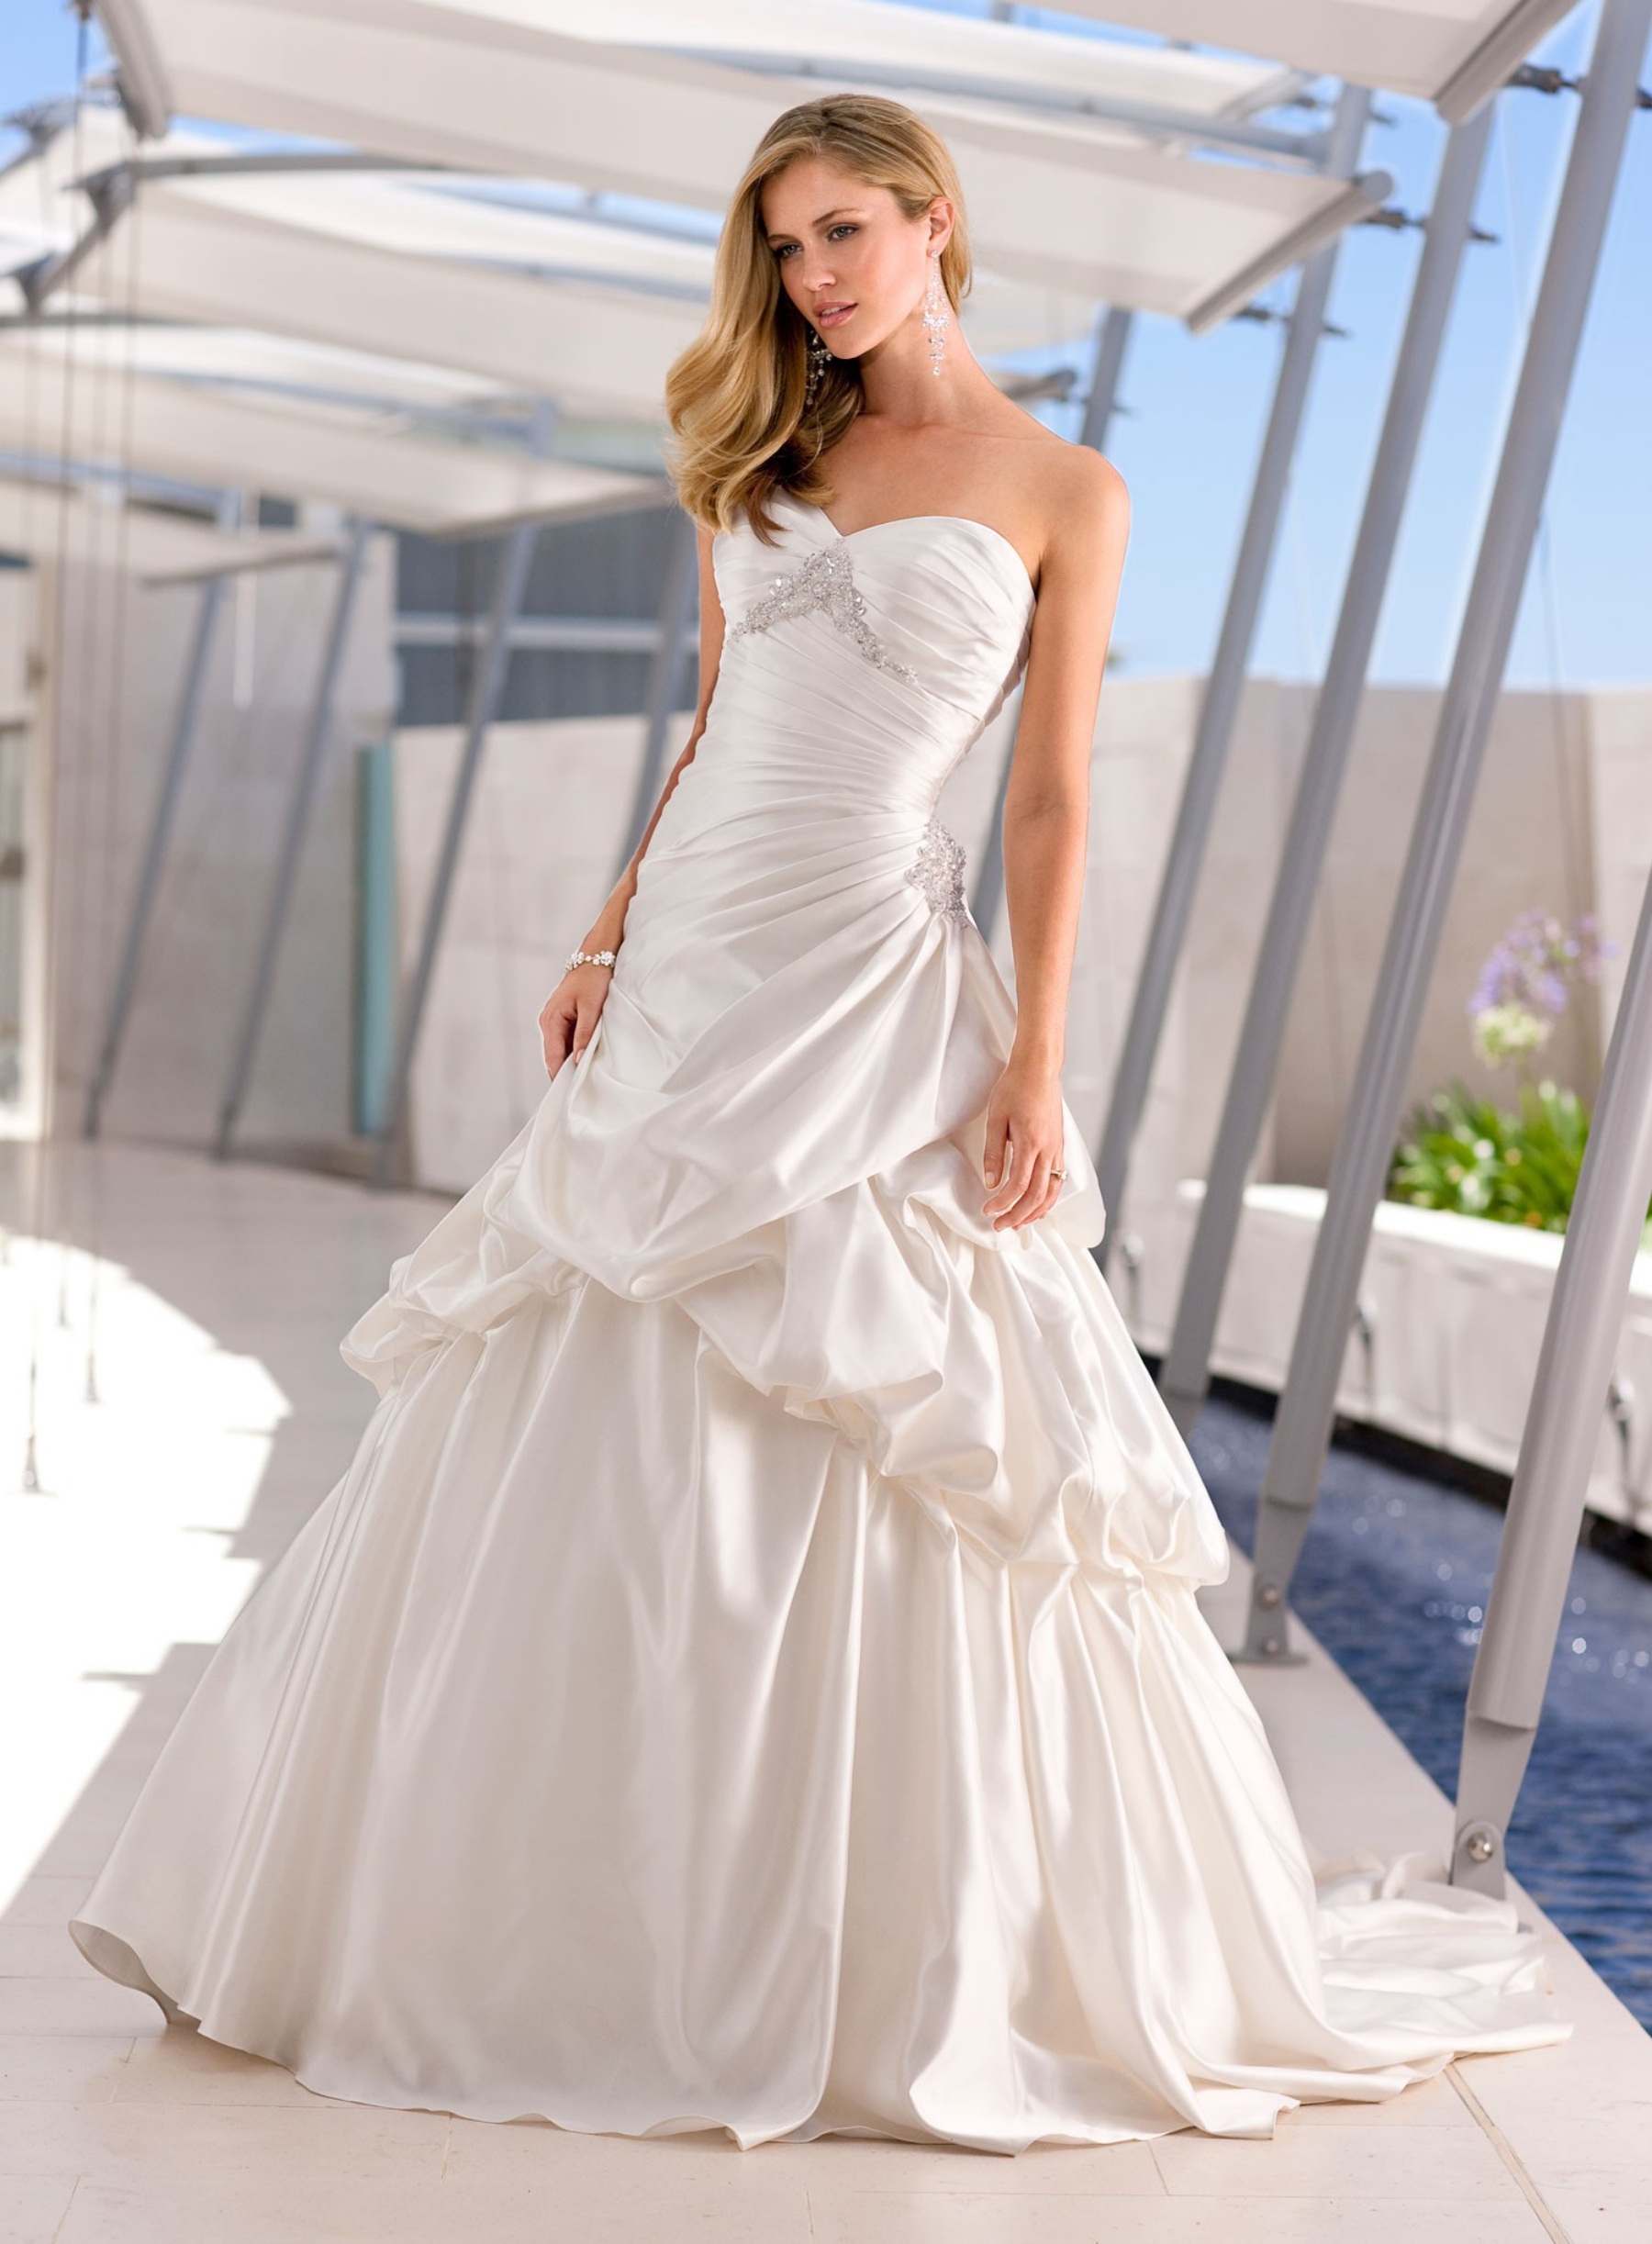 Find and save ideas about Inexpensive wedding dresses on Pinterest. | See more ideas about Wedding dress alterations cost, Inexpensive dresses and Bohemian wedding dress uk.